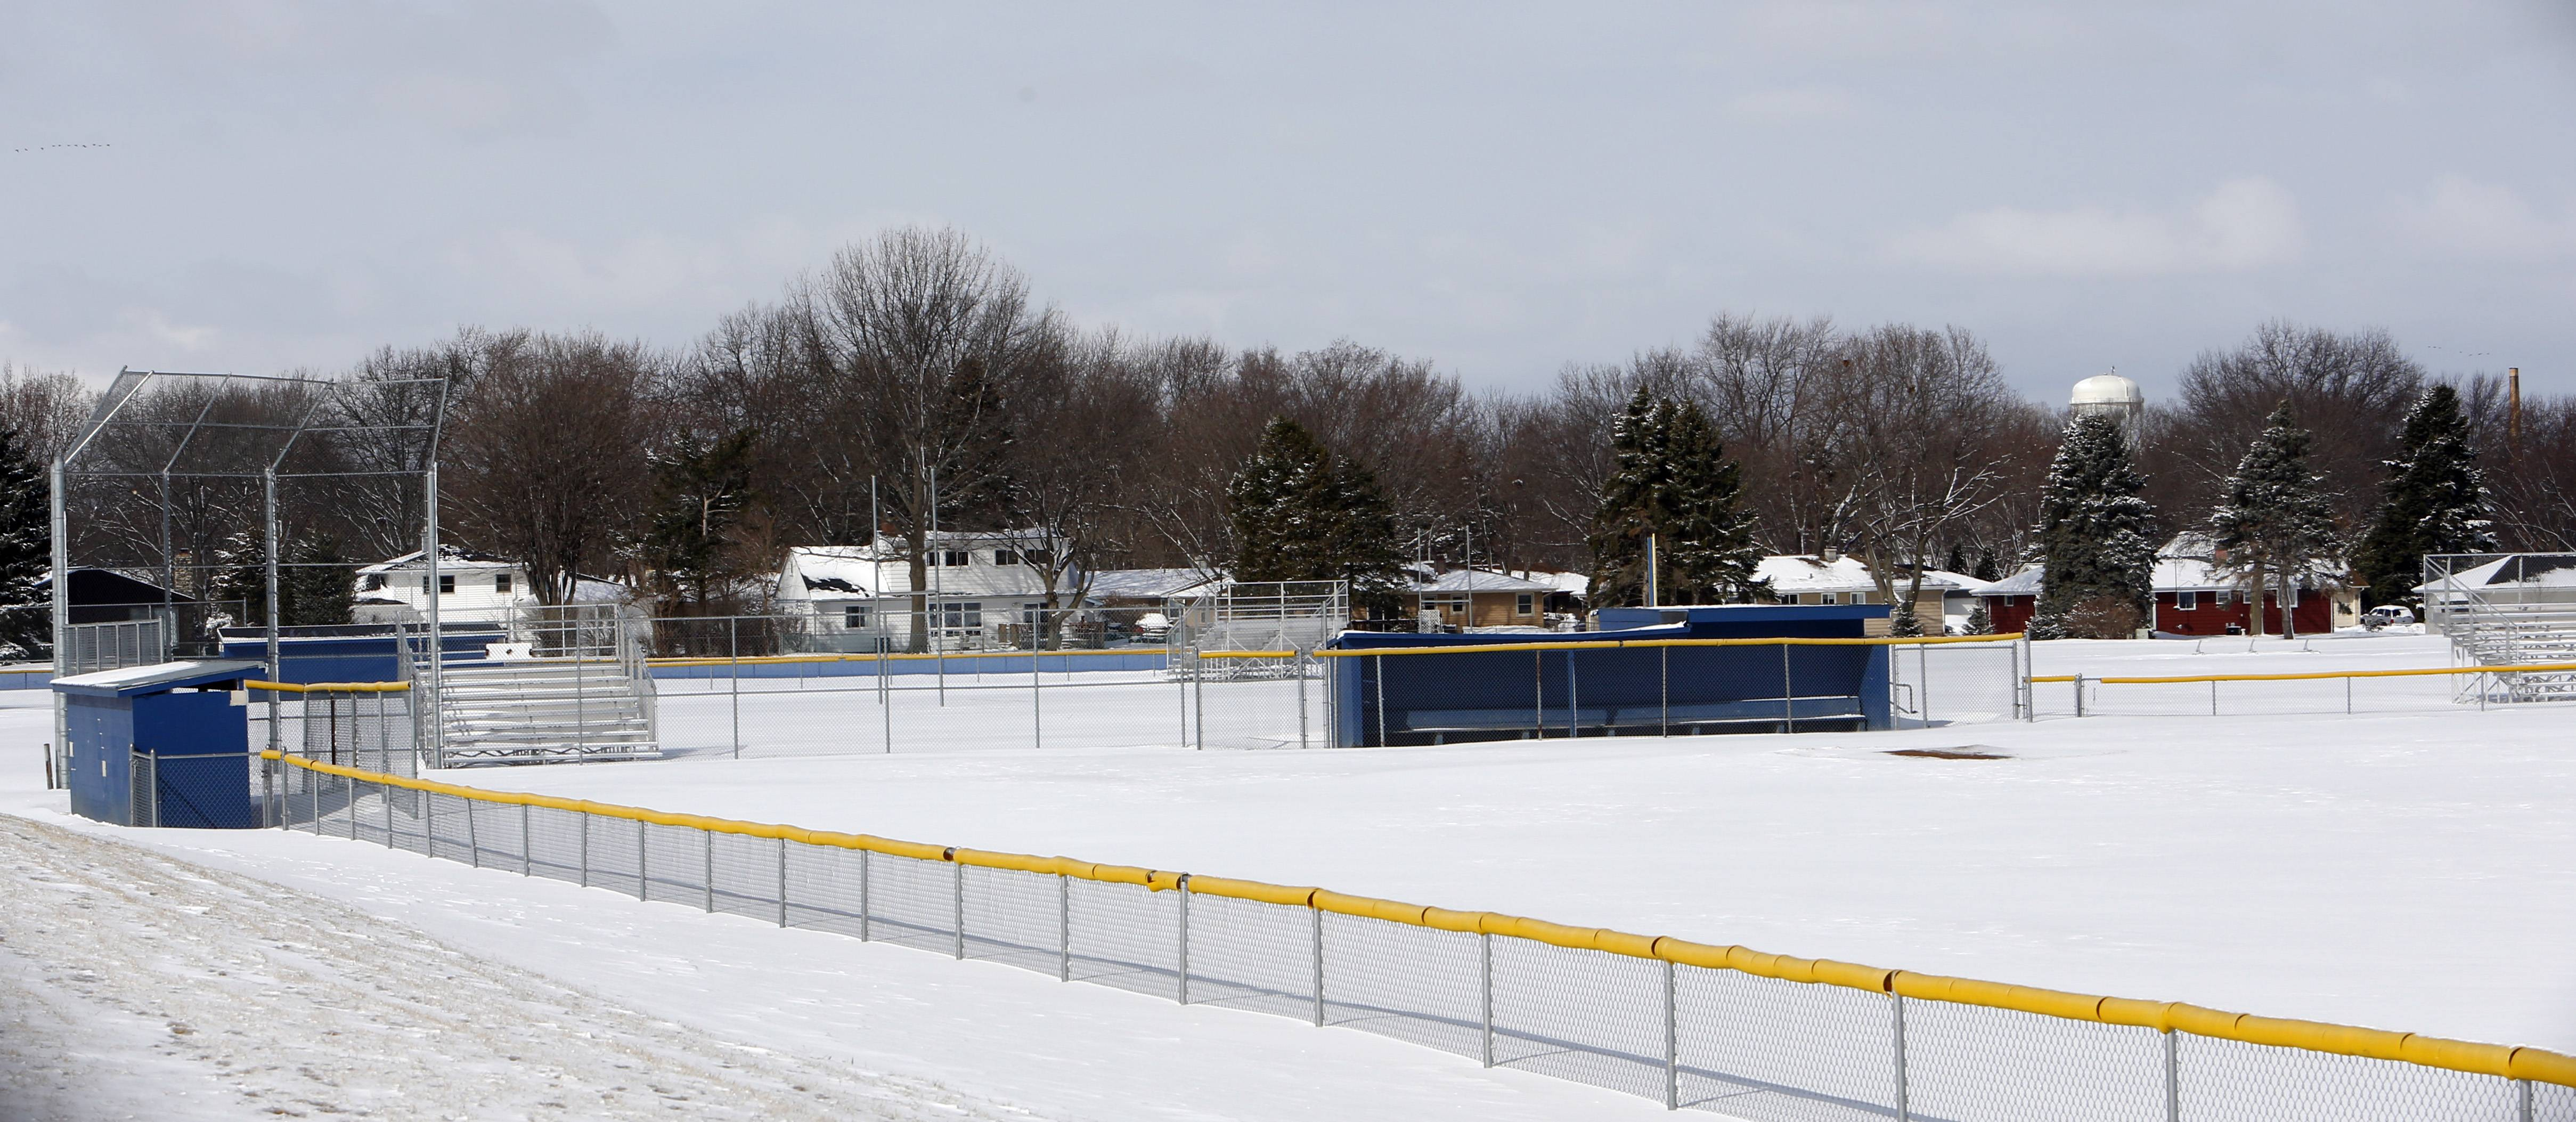 The Larkin High School baseball diamond remains under a cover of snow Wednesday.